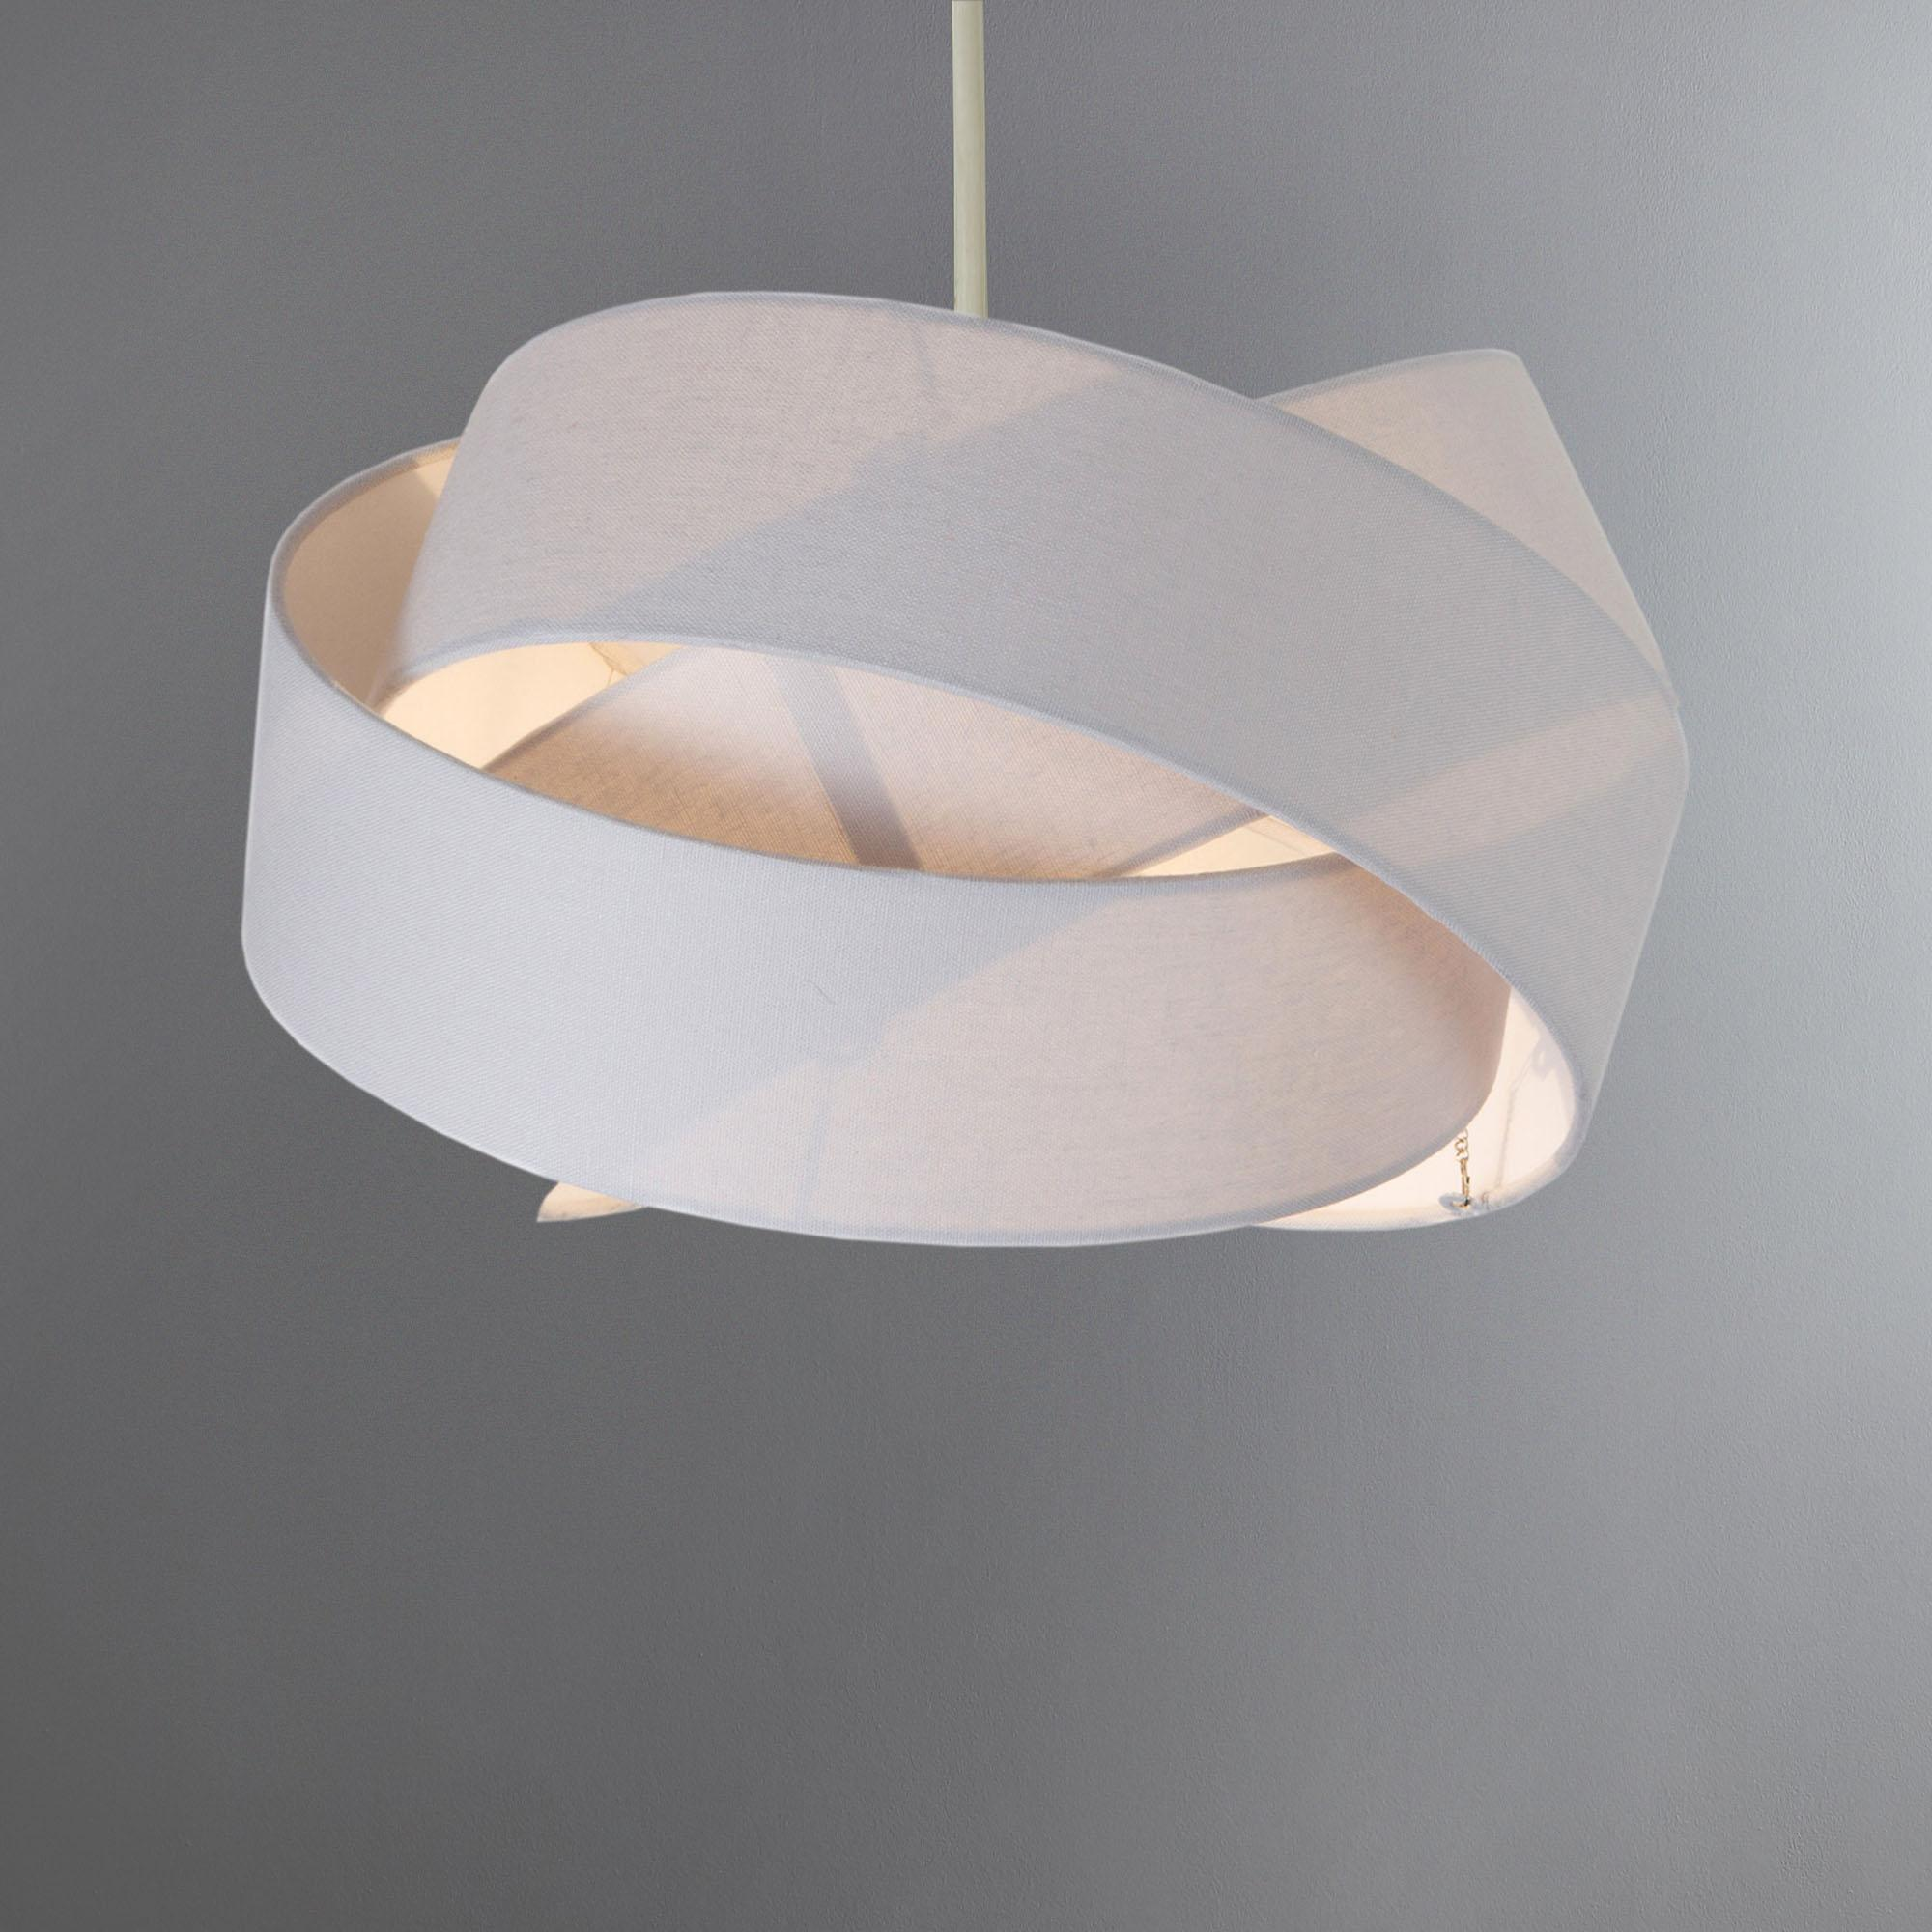 A Guide to Choosing Ceiling Light Shades